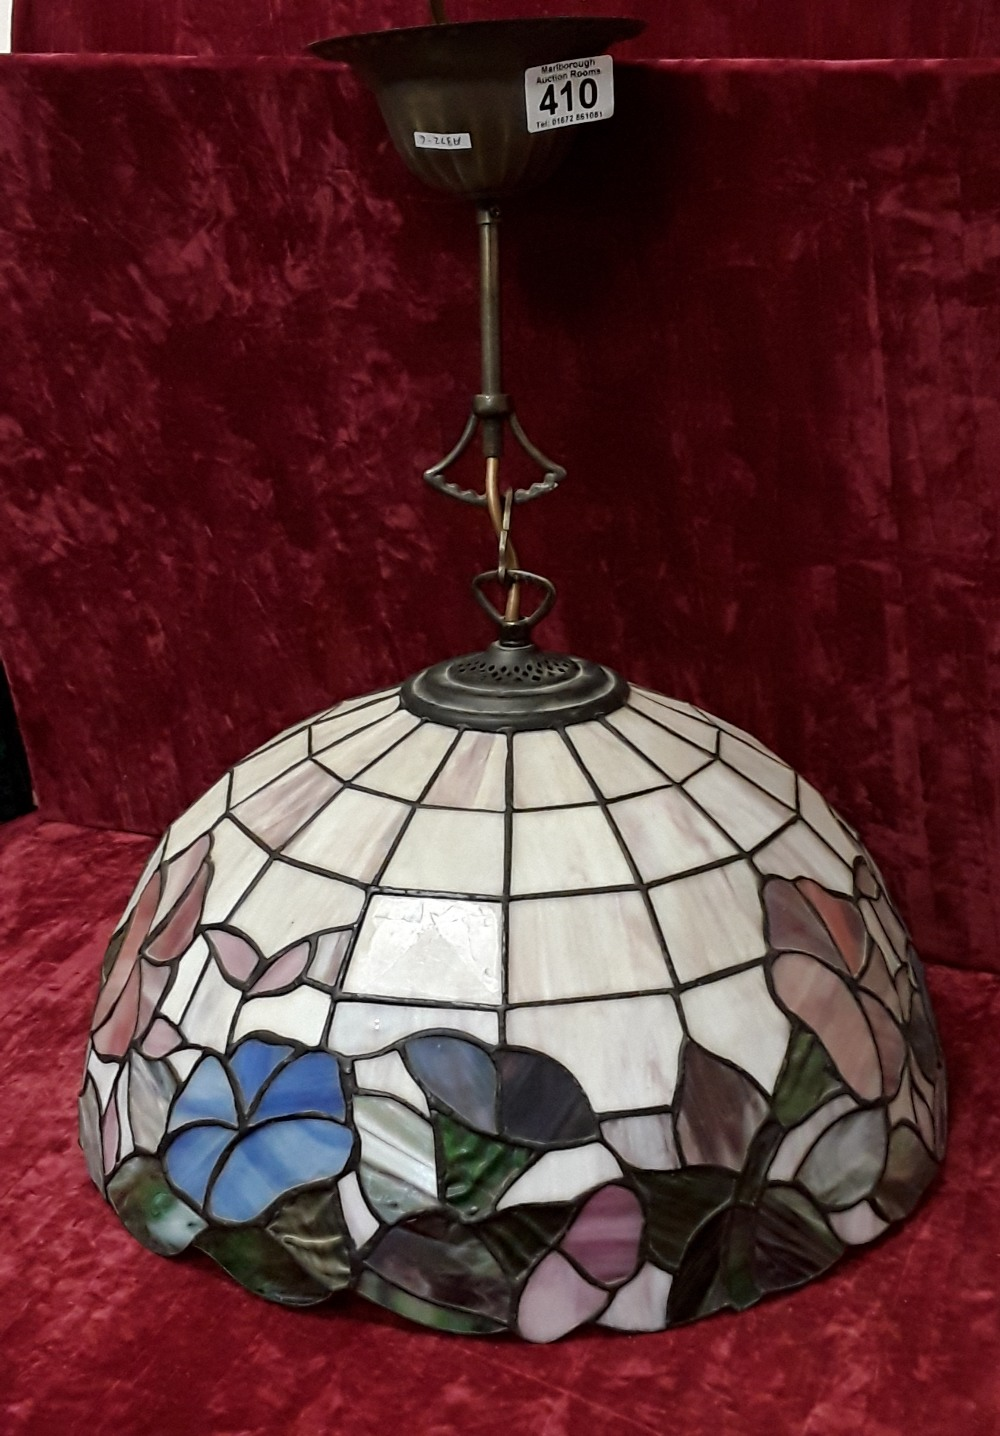 Lot 410 - A vintage Tiffany style lamp shade and fittings of with blue, pink and green flowers.